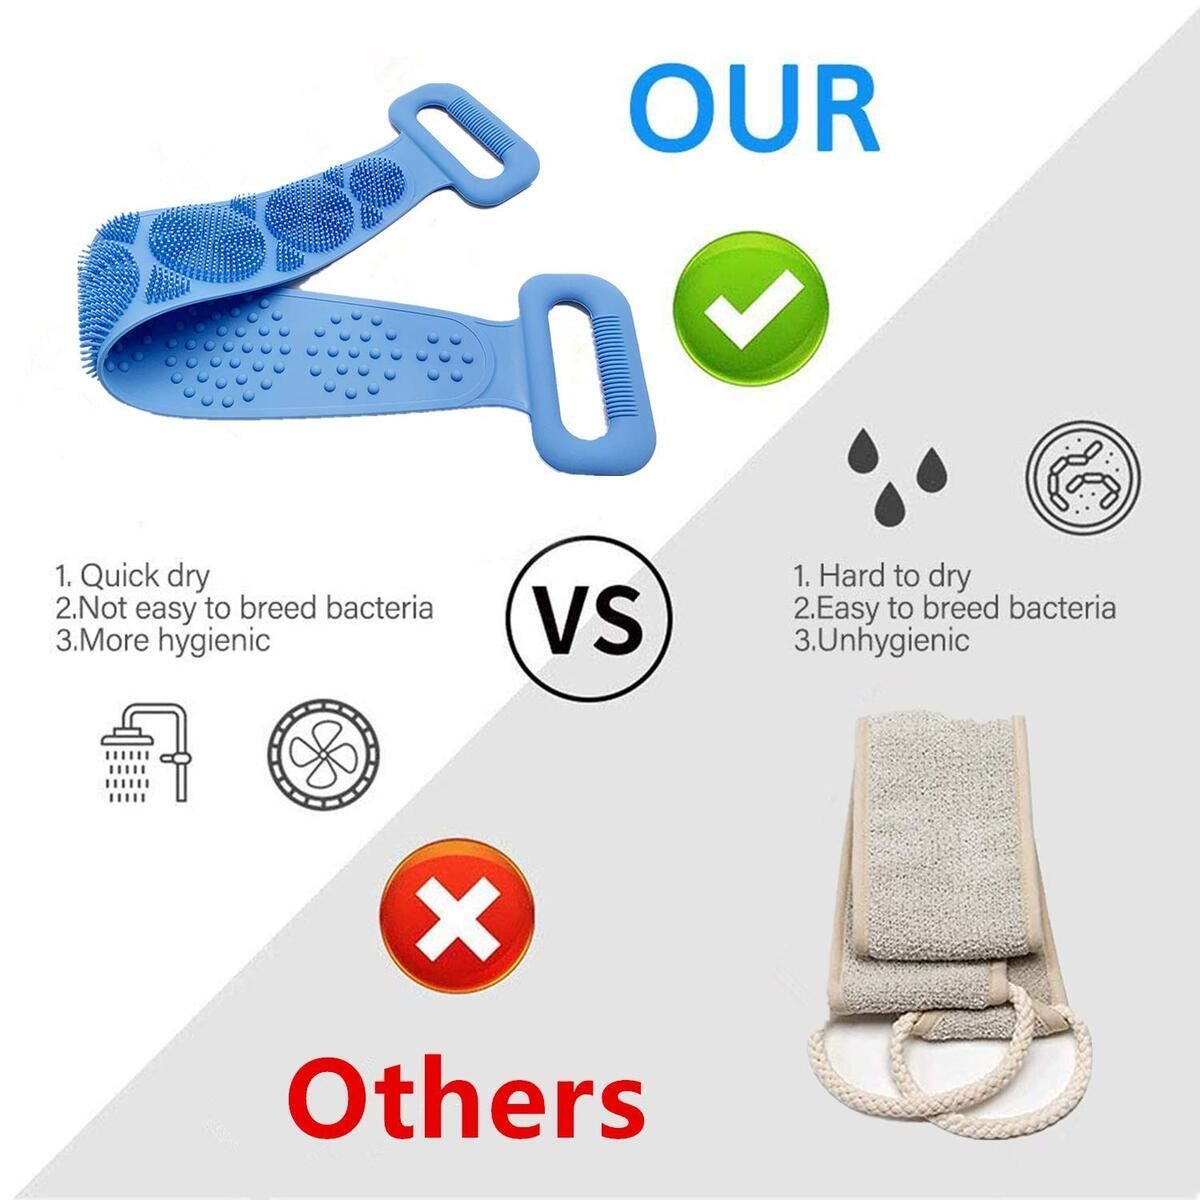 (DON'T USE COUPON!) HCN7 Silicone Bath Body Brush – Exfoliating Silicone Body Scrubber with Soft Tips – Silicone Shower Scrubber for Your Back – Ergonomic Silicone Loofah for Women and Men – Silicon Back Scrubbers - Long